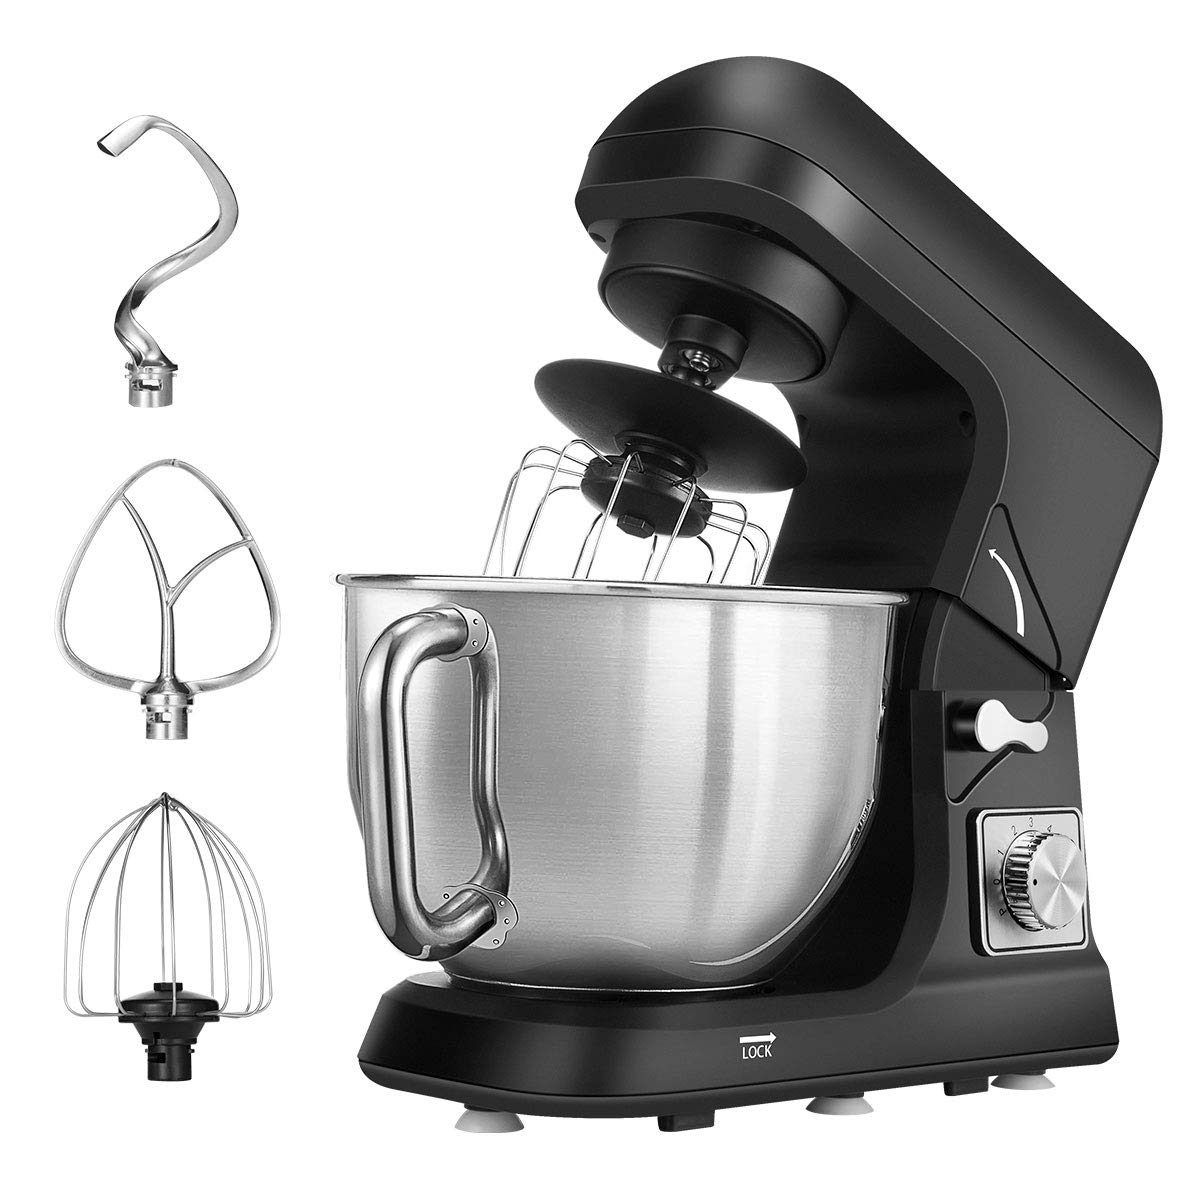 Stand Mixer, Dough Mixer with 5 Qt Stainless Steel Bowl, 6 Speeds Tilt-Head Food Mixer, Kitchen Electric Mixer with Double Dough Hooks, Whisk, Beater, Pouring Shield, Black by CUSIBOX